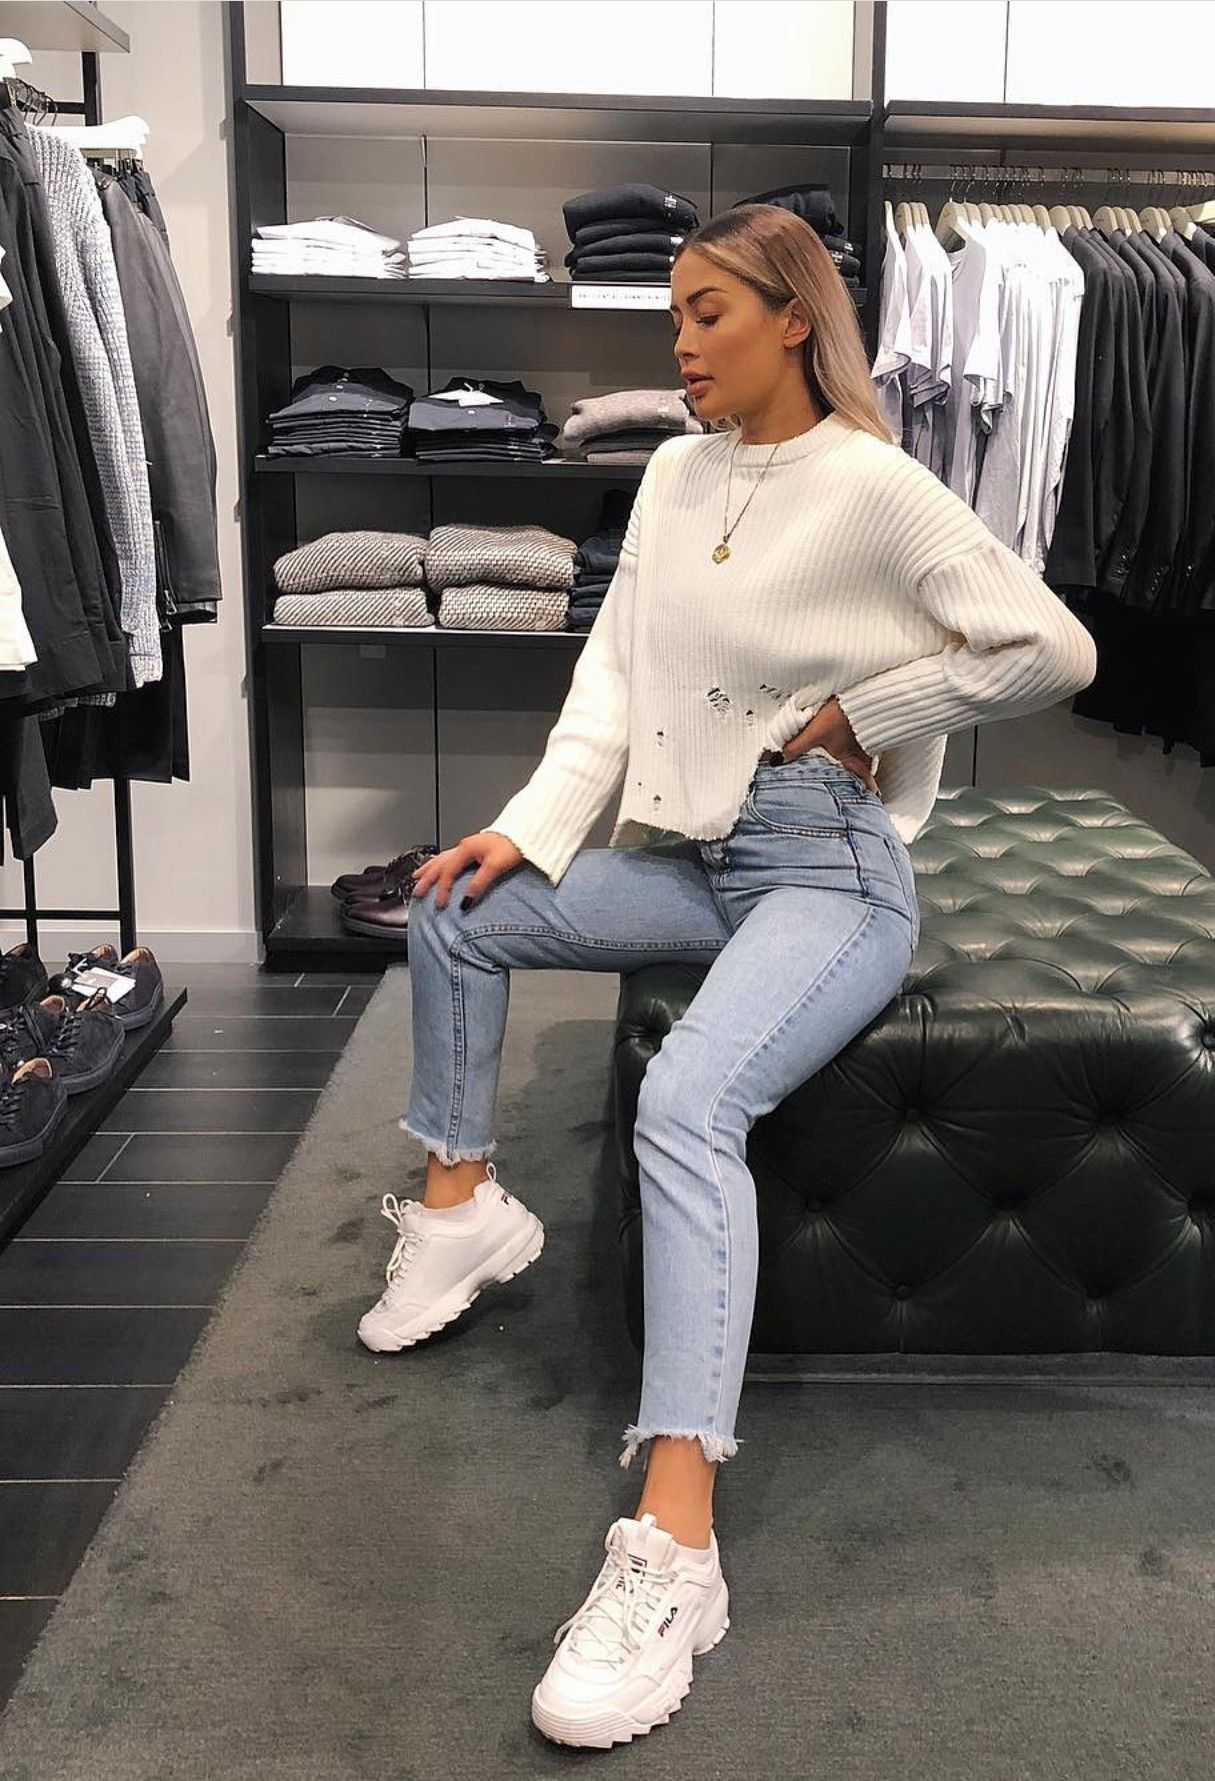 pinterest//hannahnickk | Style Pile | Sporty chic outfits ...